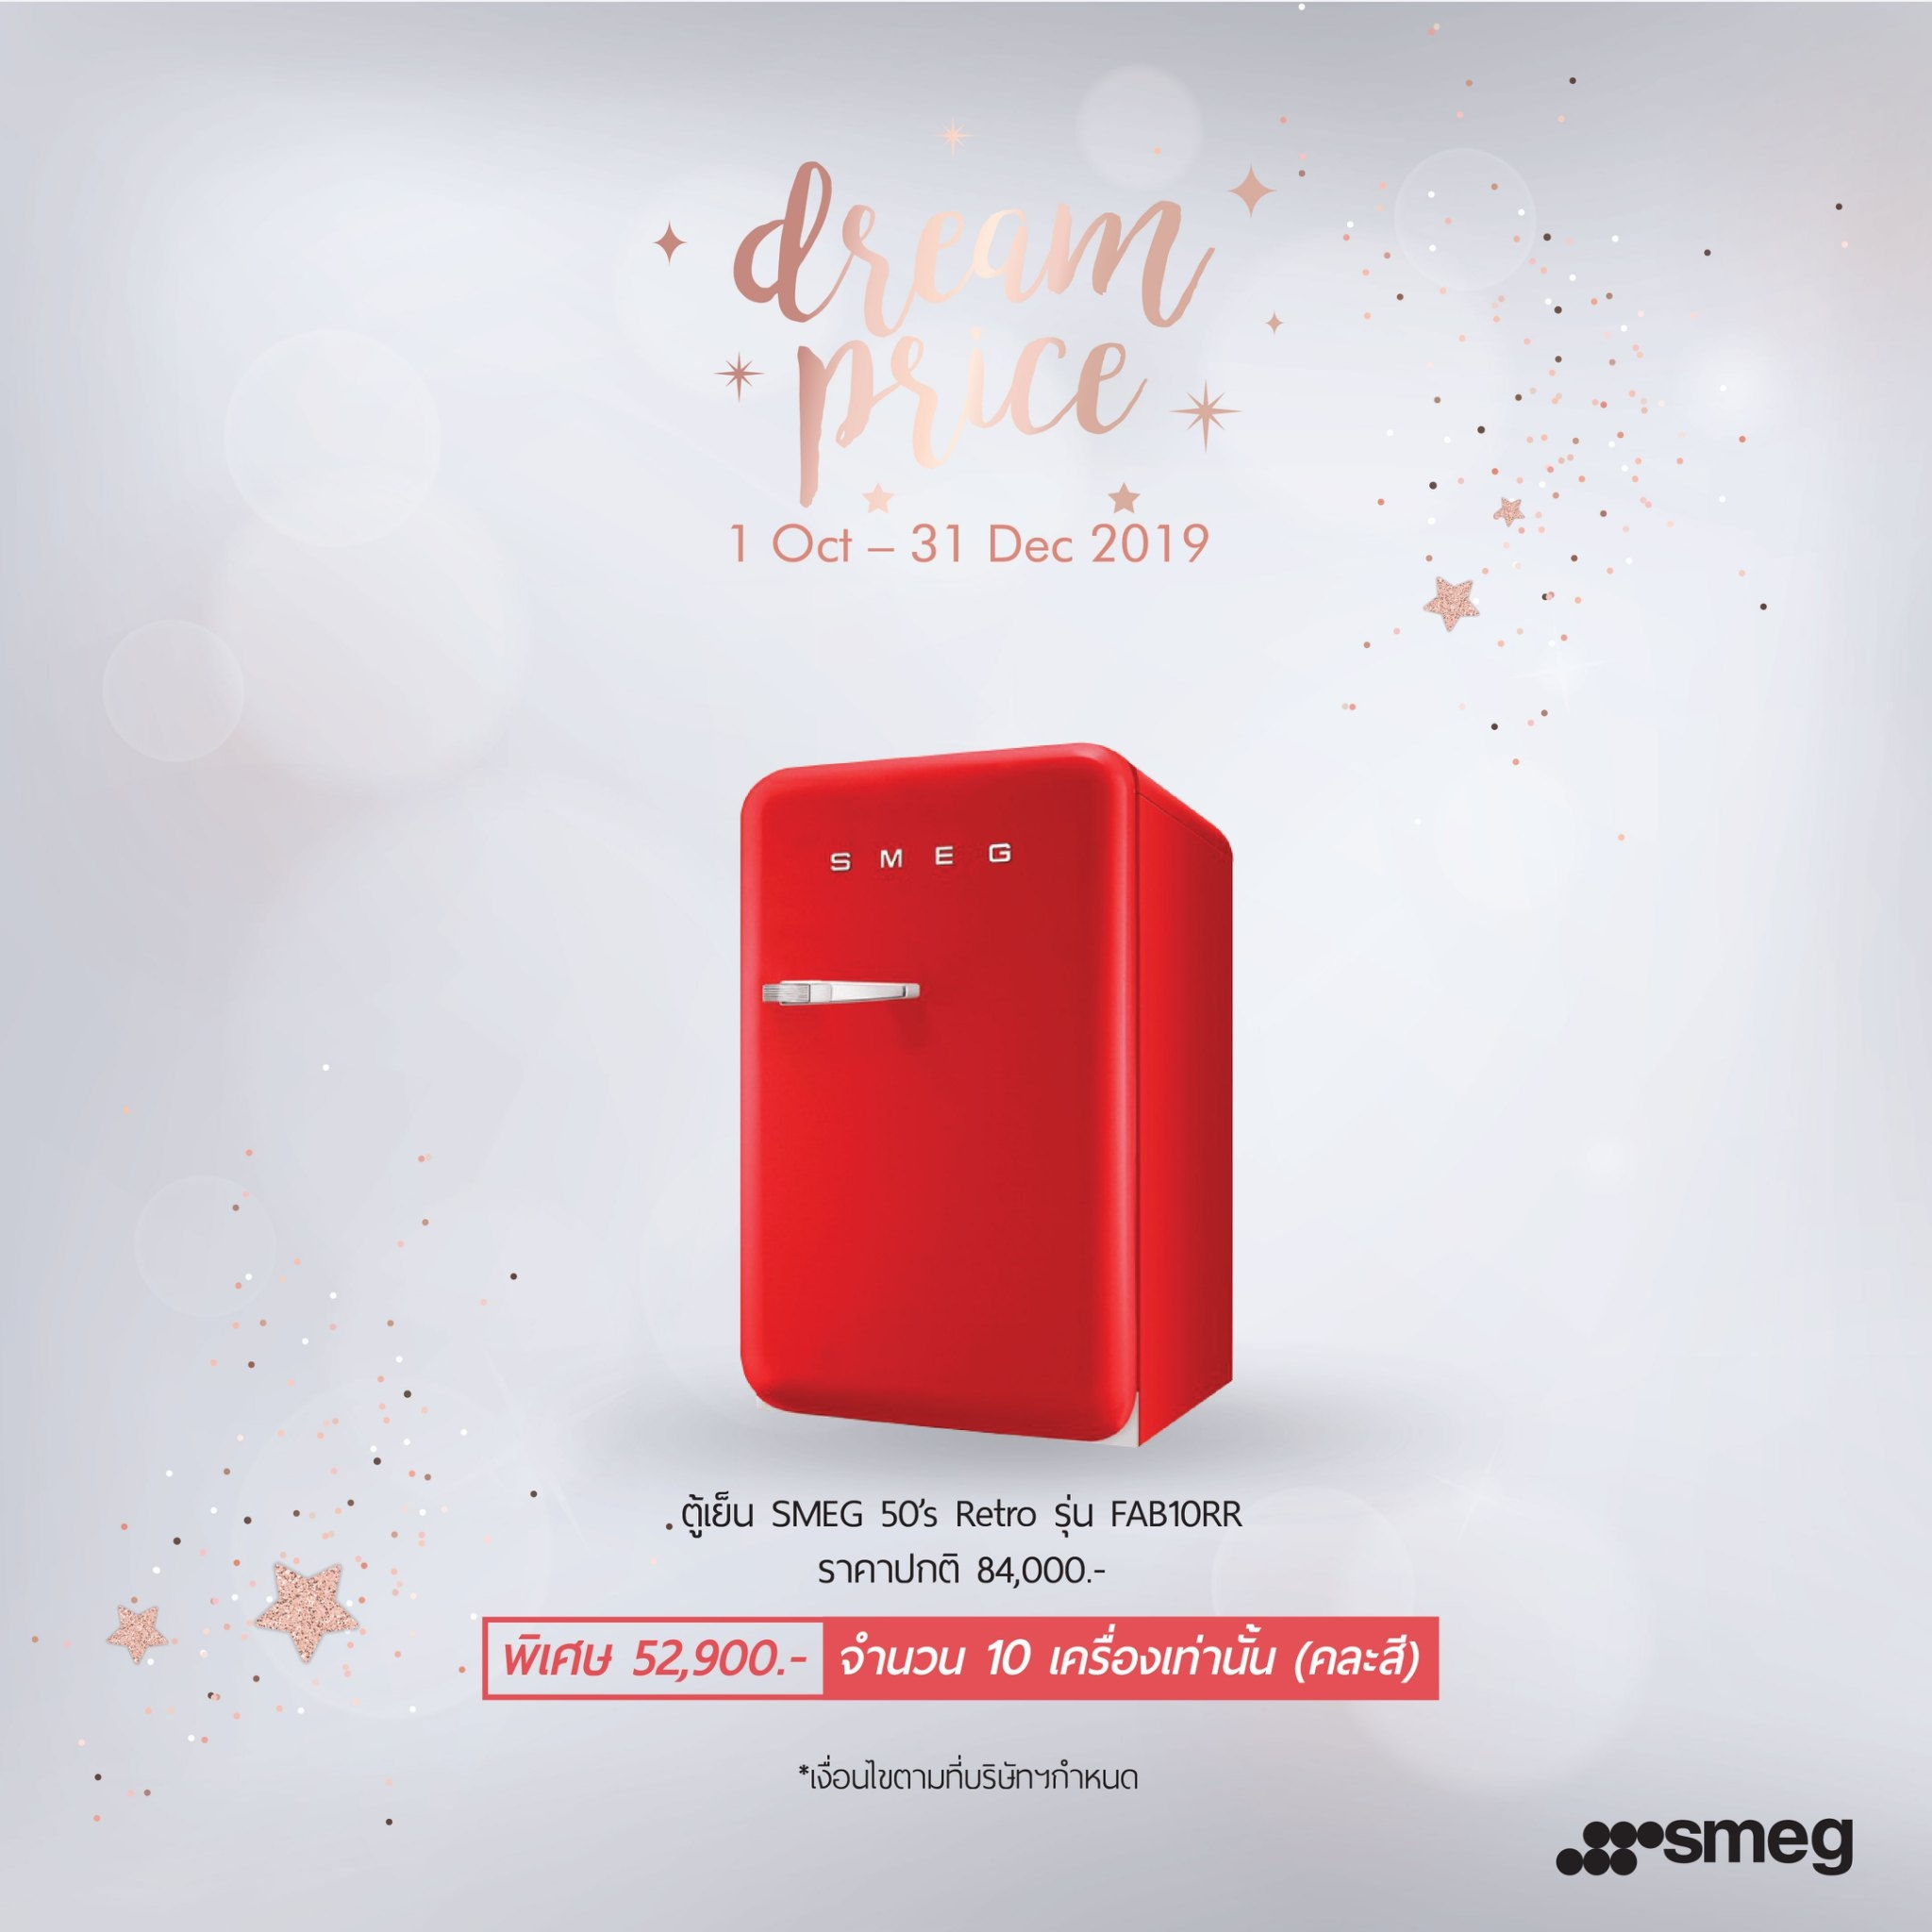 Smeg Dream Price 2019 : FAB10RR